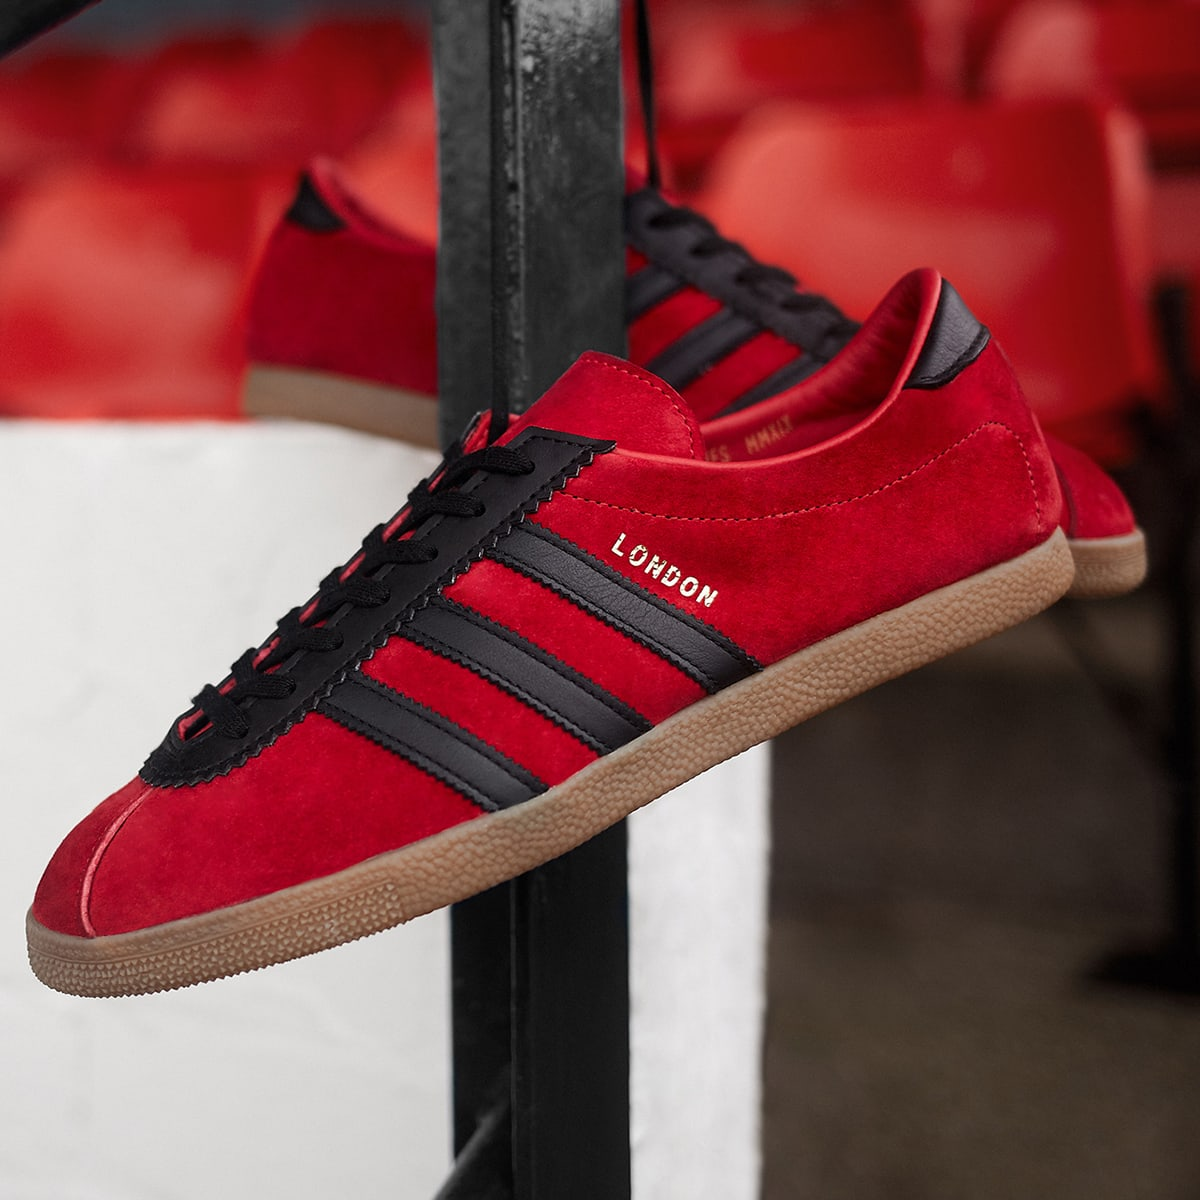 END. Features | adidas London City Series Register Now on